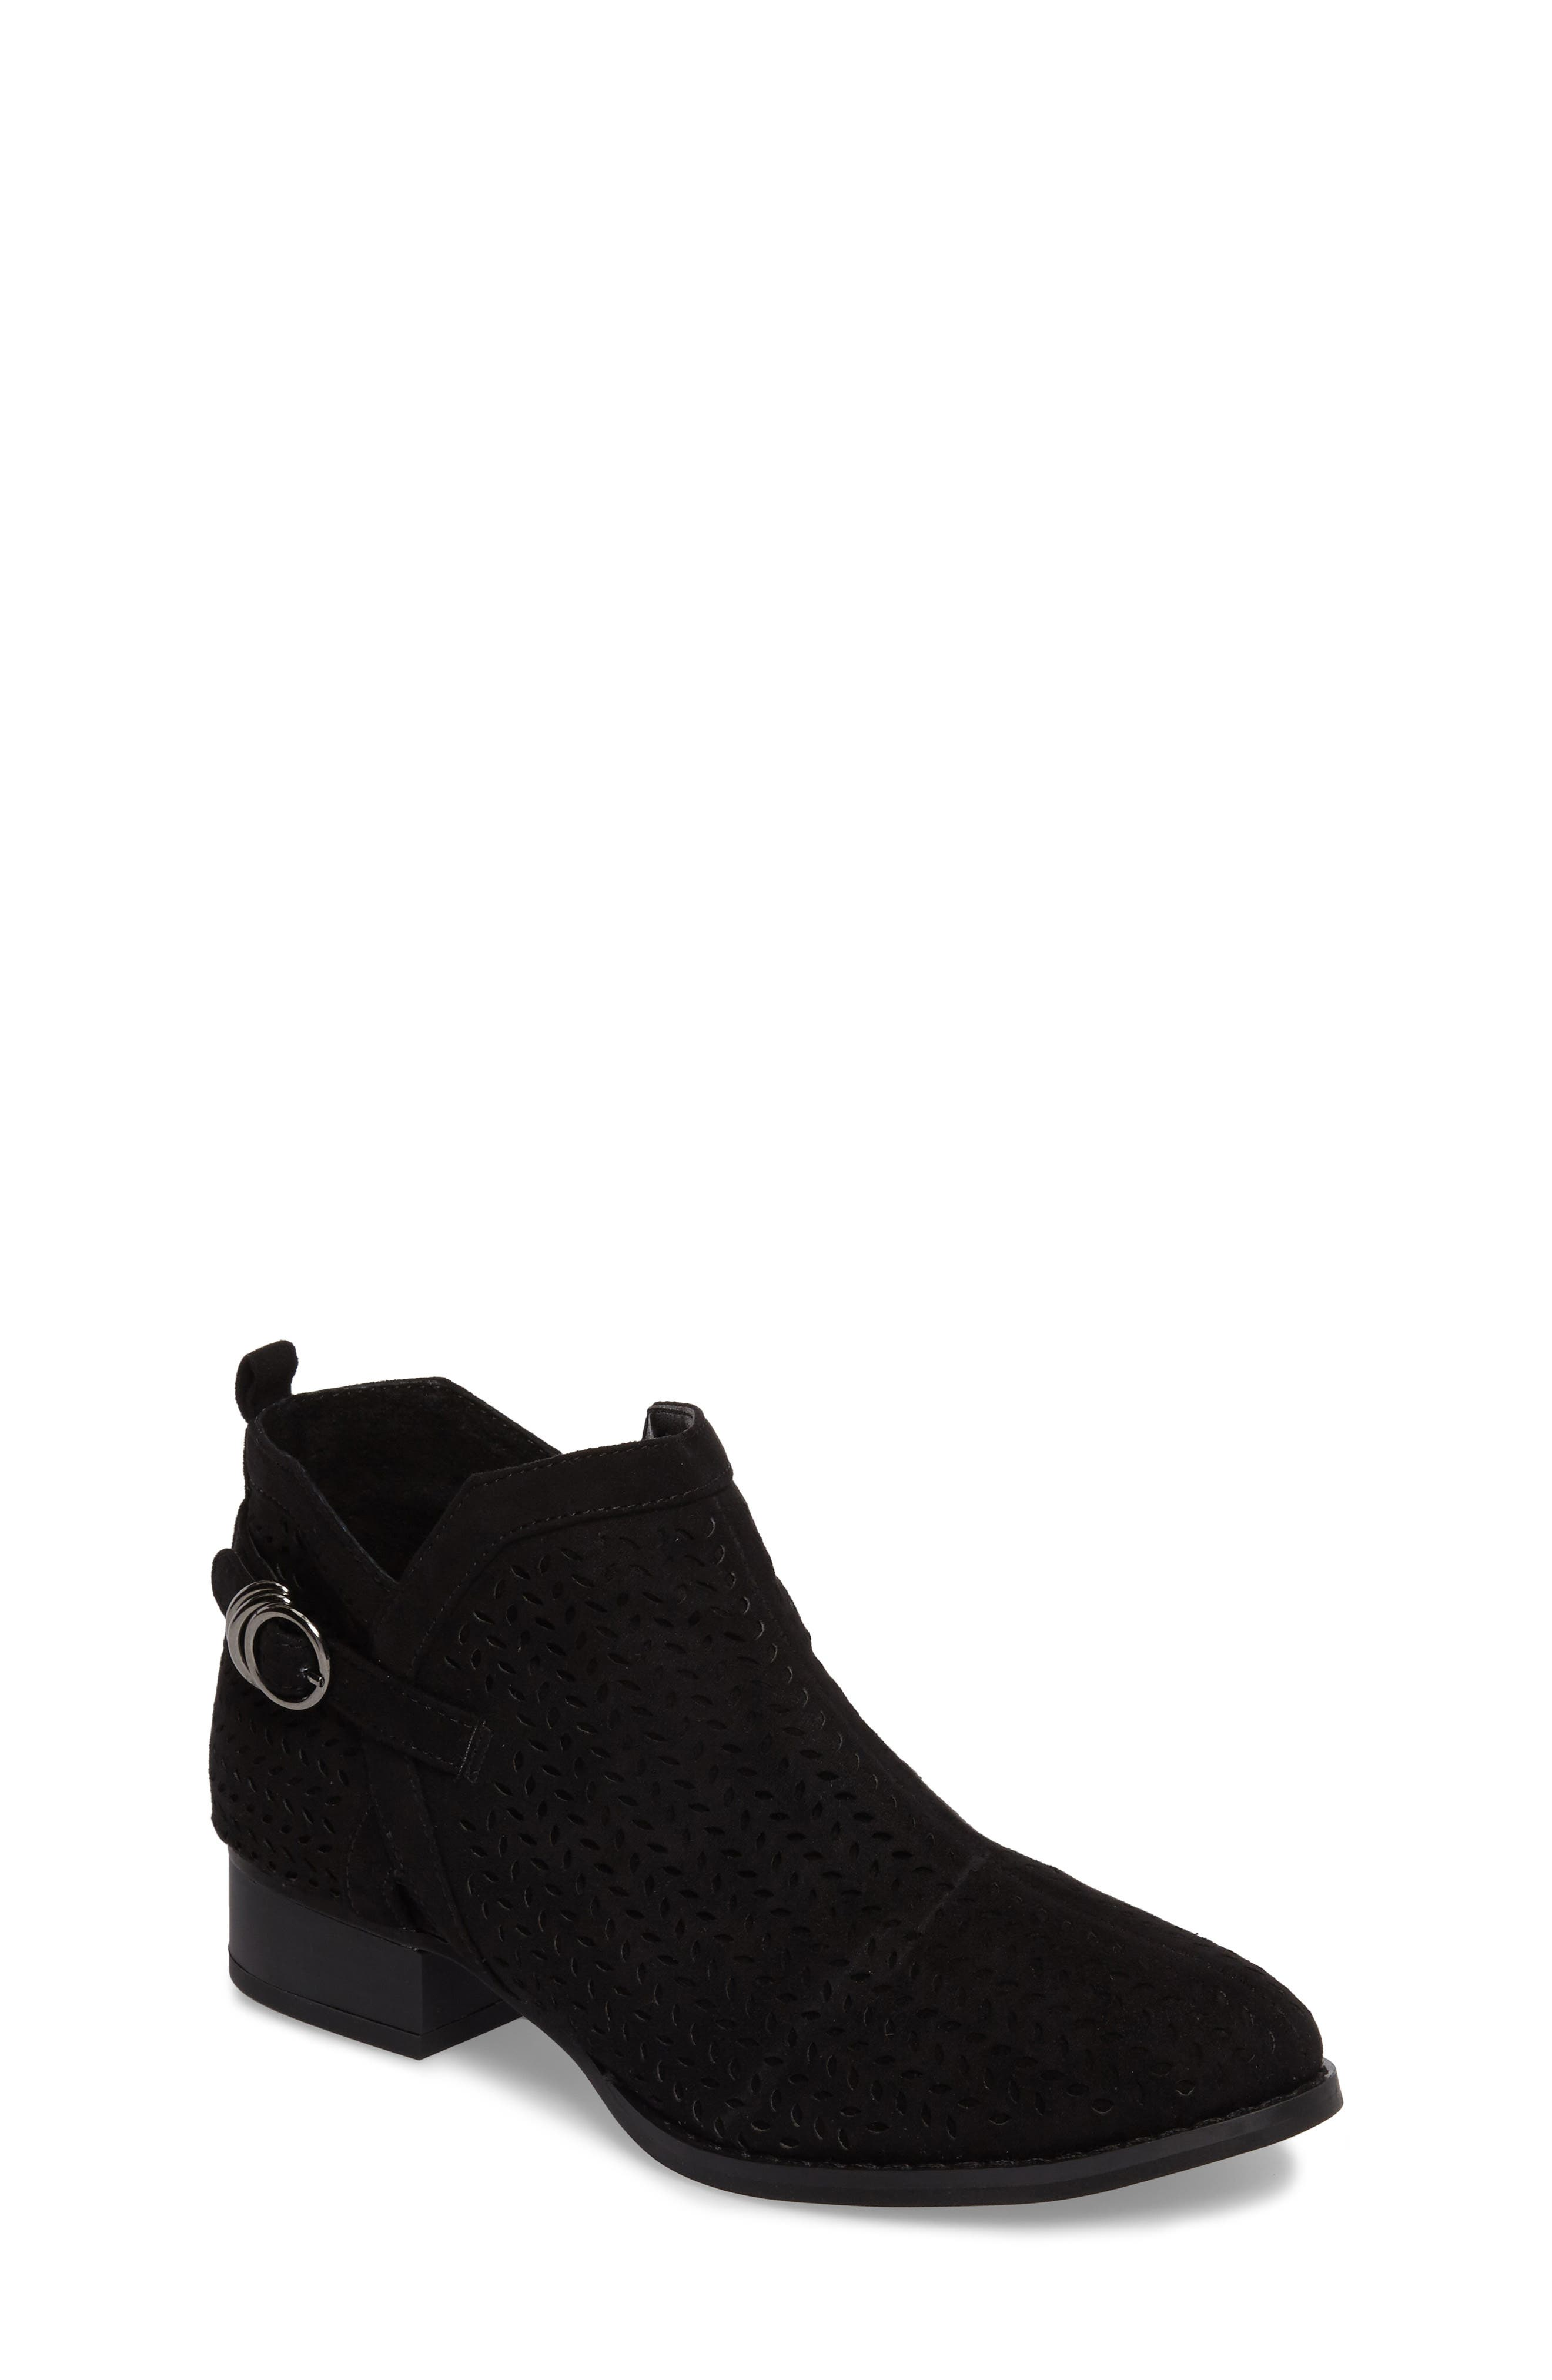 Campina Perforated Bootie,                         Main,                         color, BLACK SUEDE